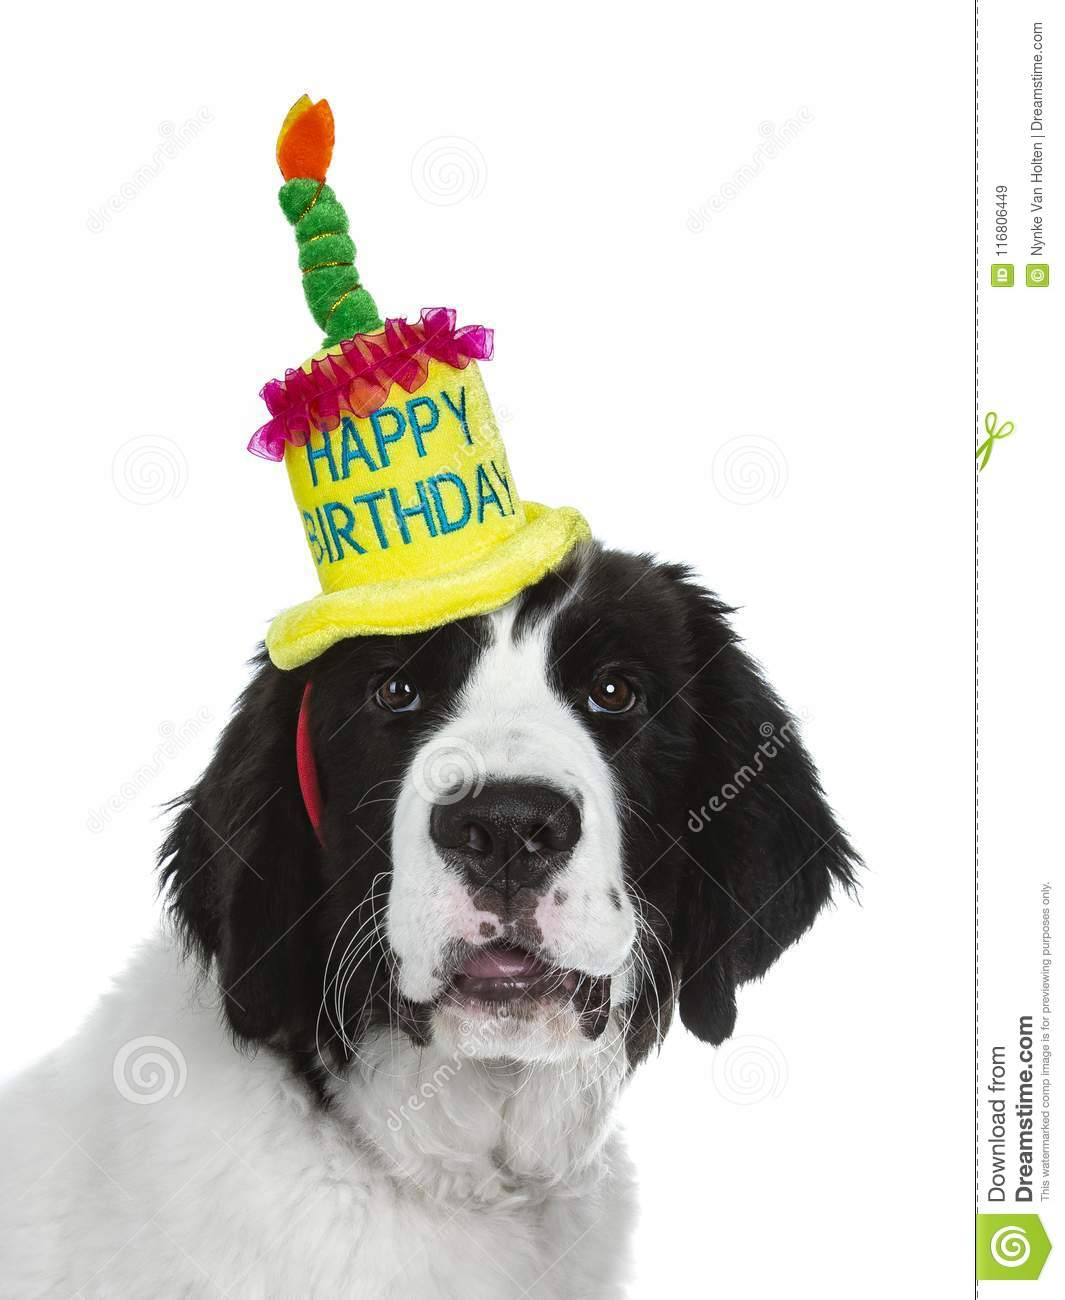 Black And White Landseer Puppy With Birthday Hat On Background